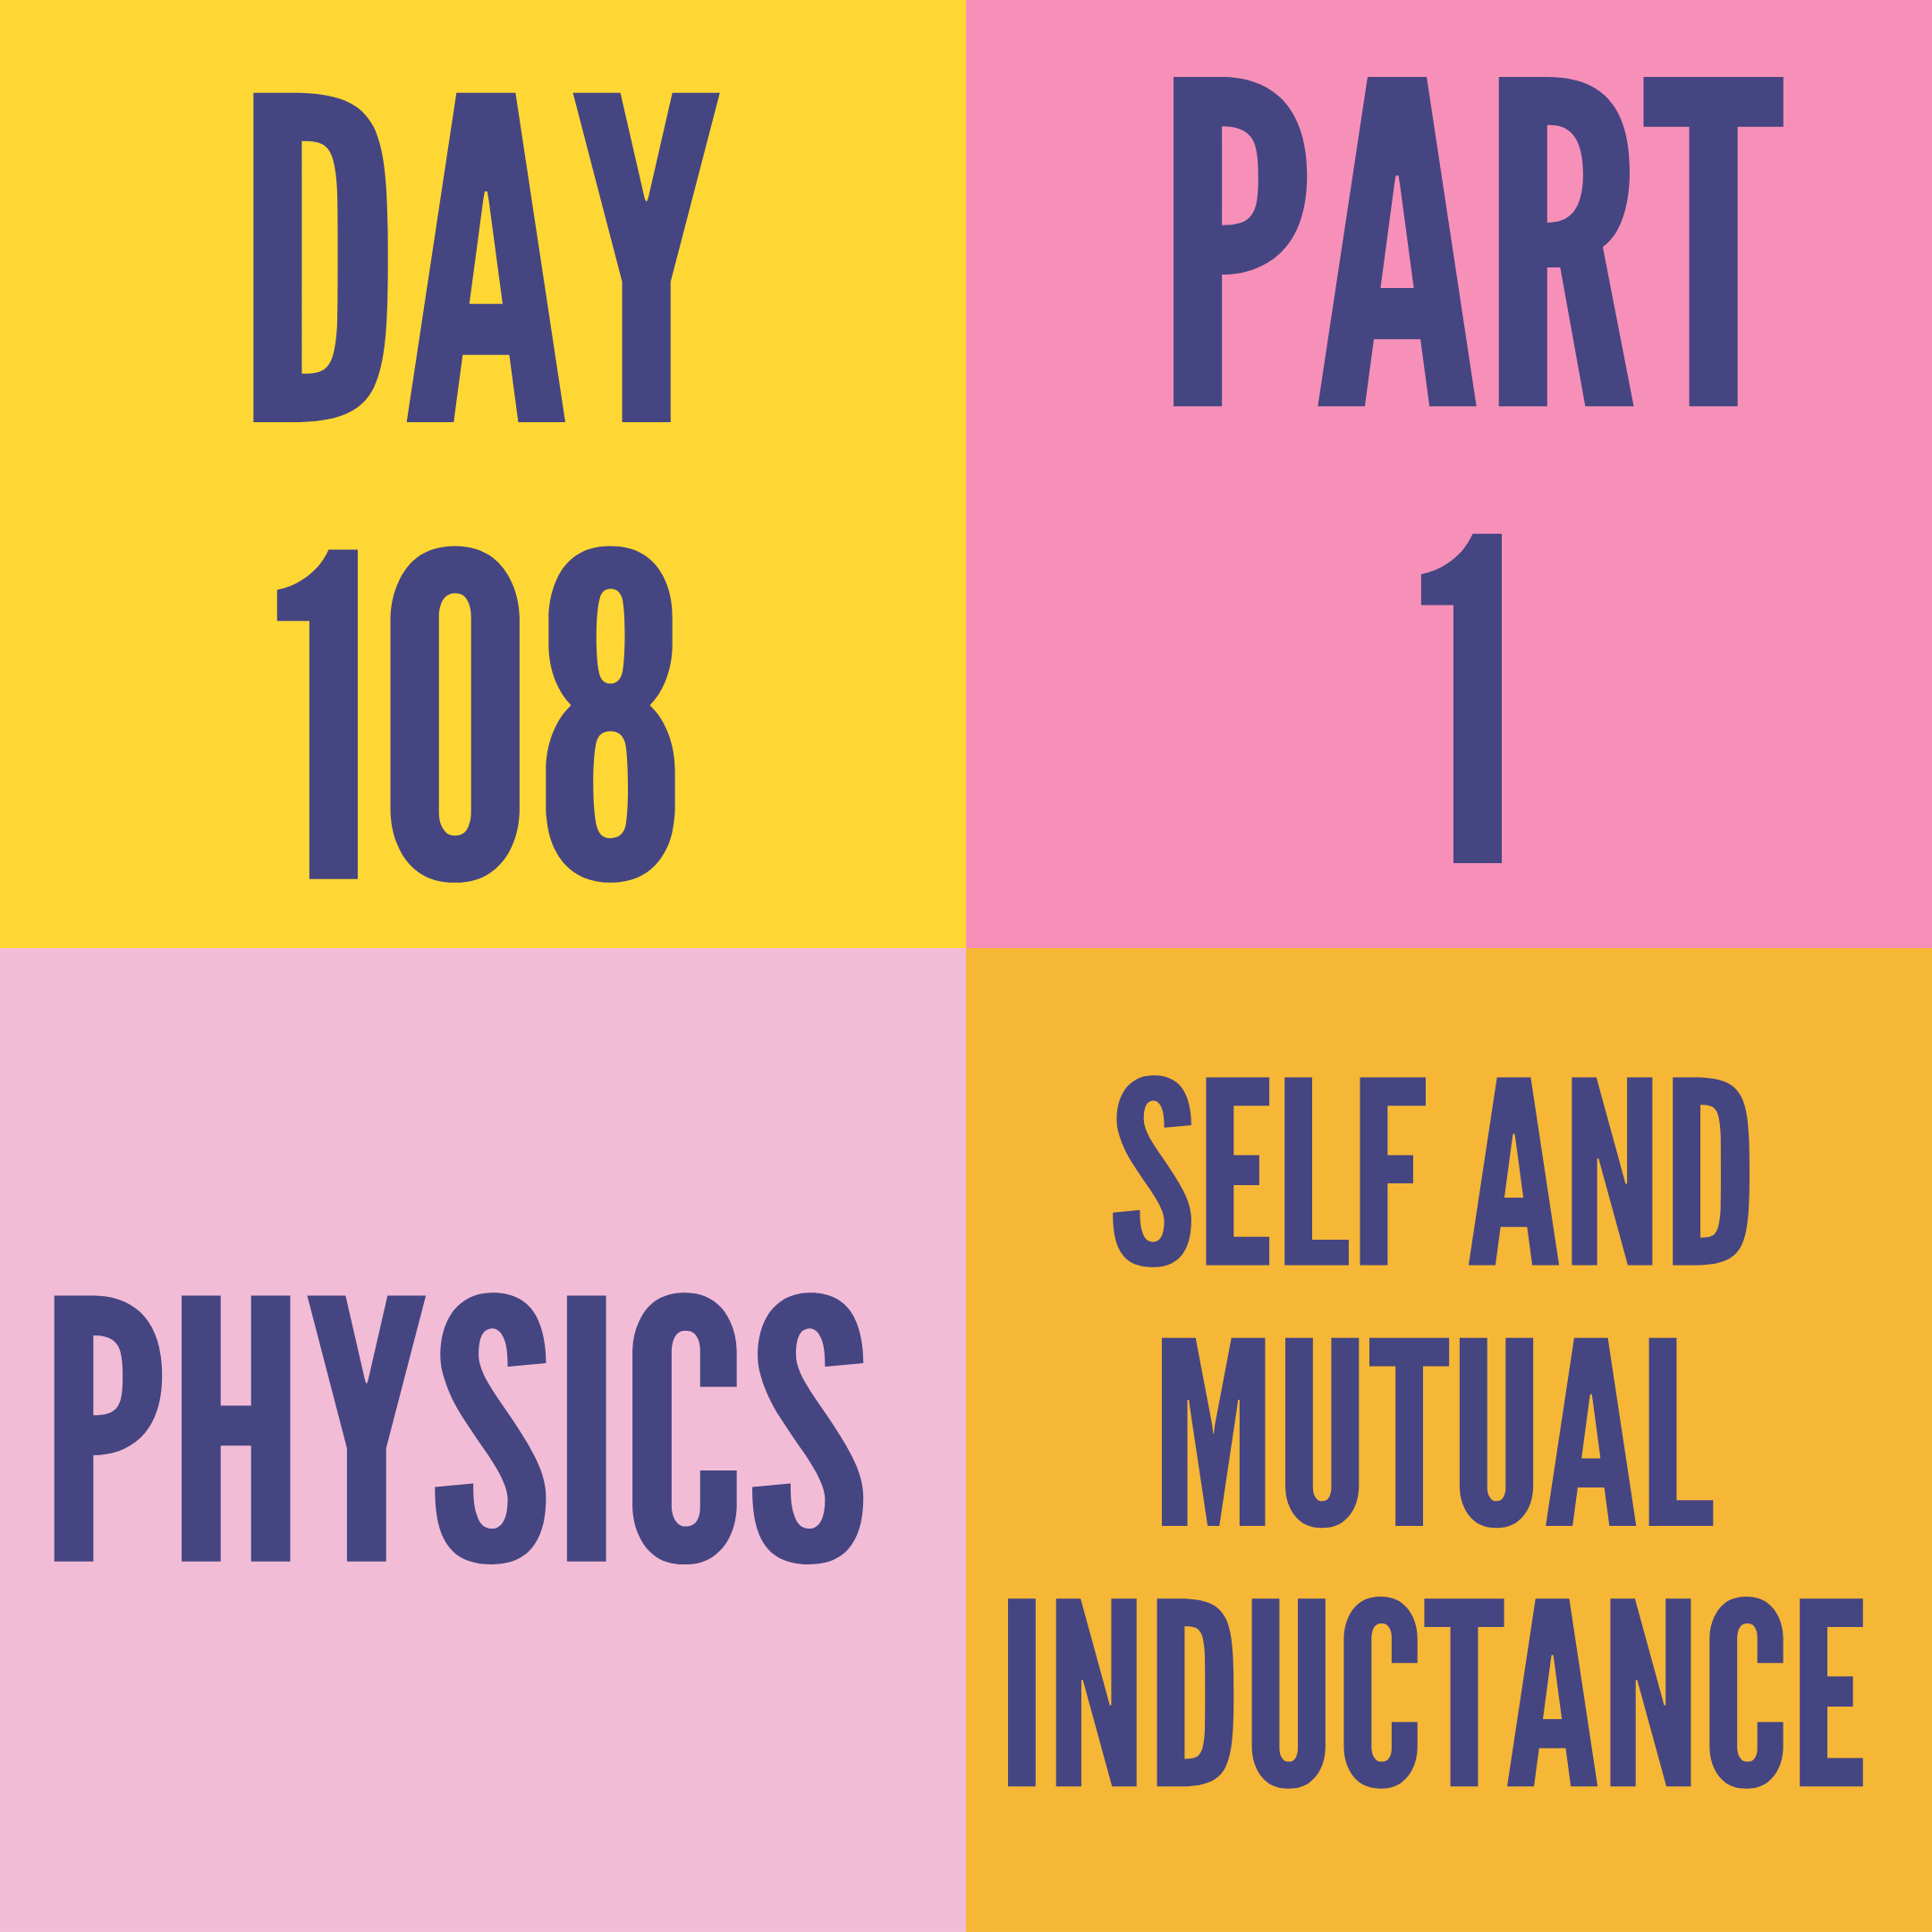 DAY-108 PART-1 SELF AND MUTUAL INDUCTANCE